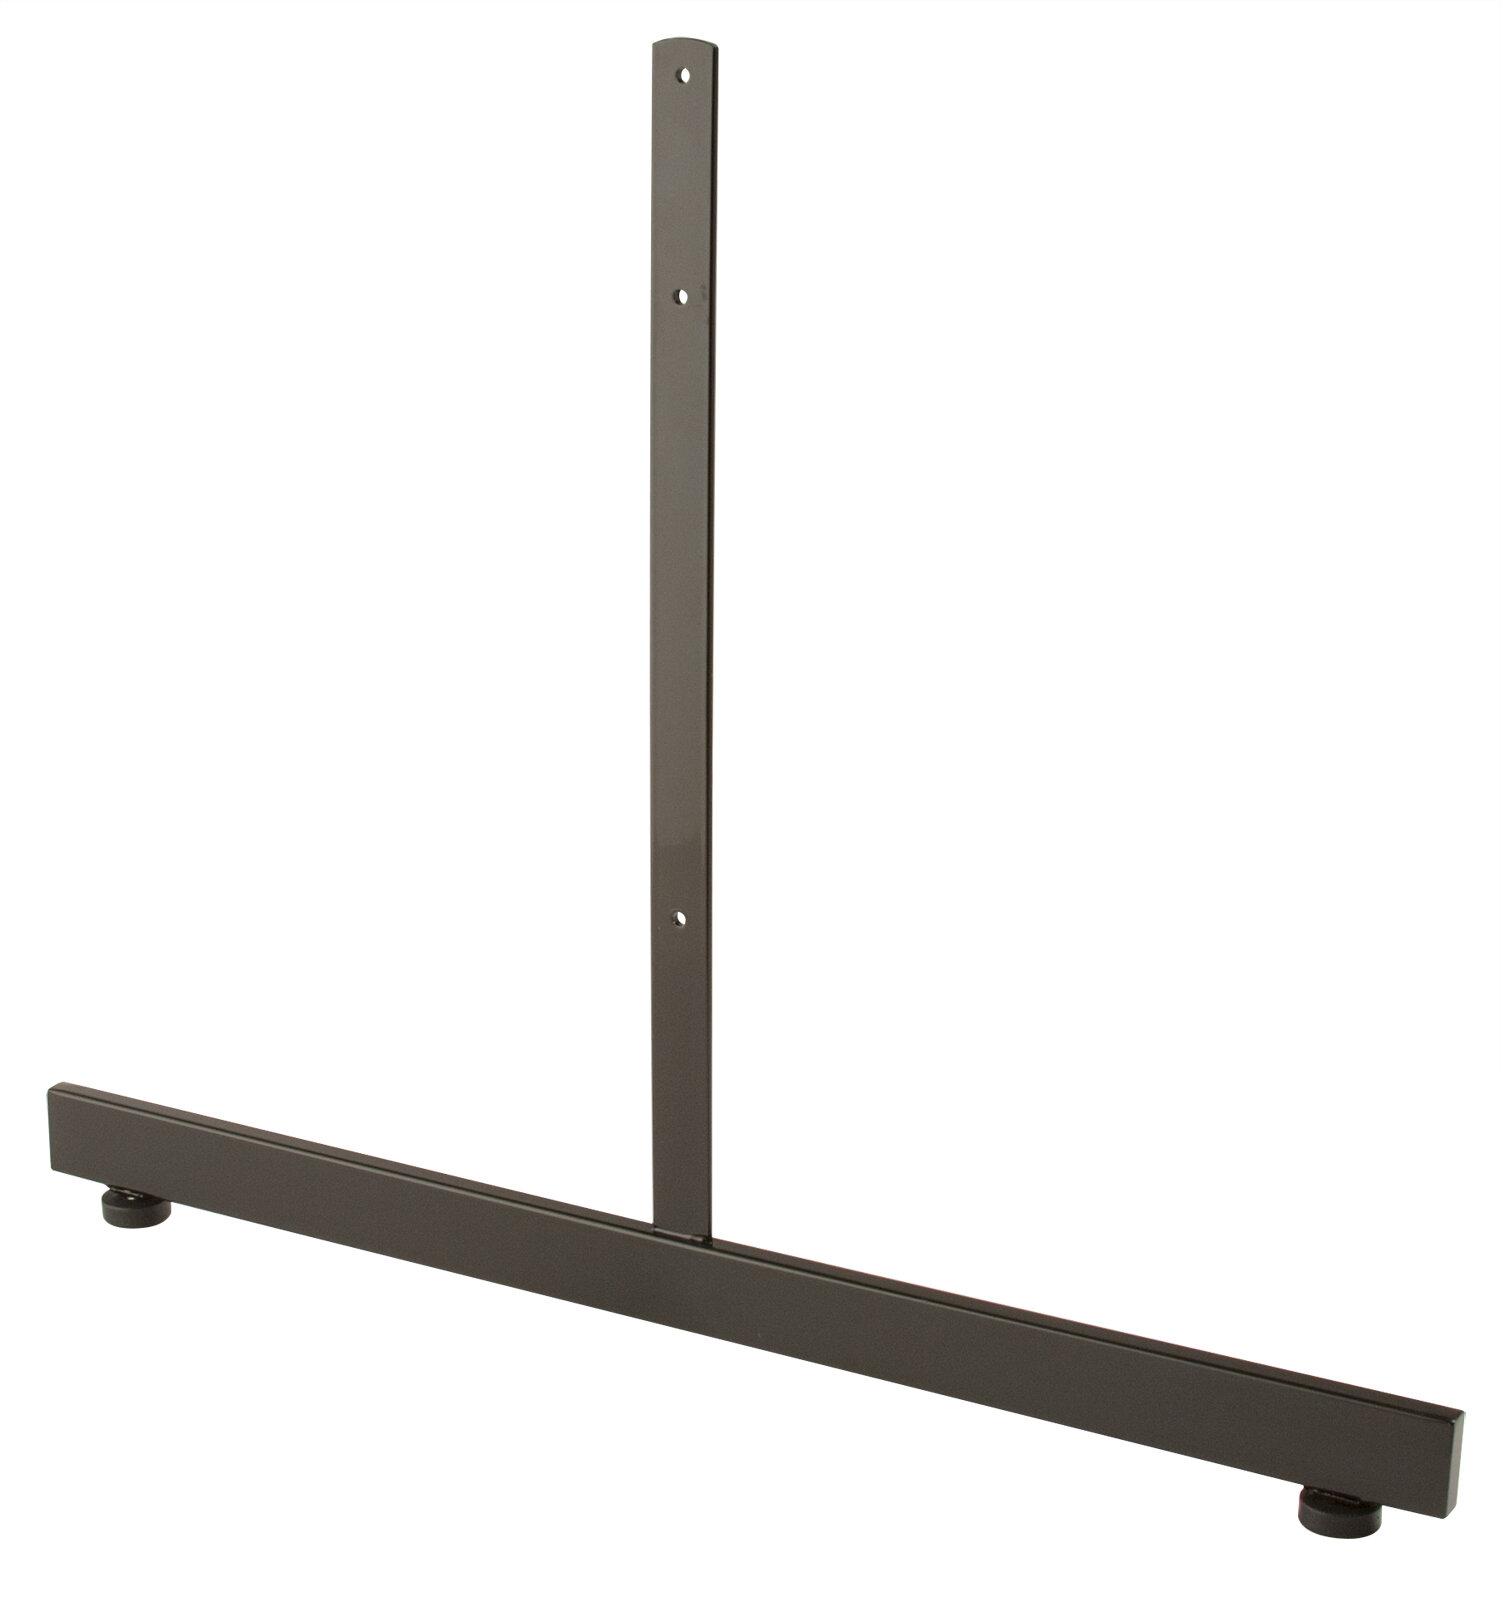 Wfx Utility 18 H X 24 W T Shaped Legs Stand Base For Grid Panels Wayfair